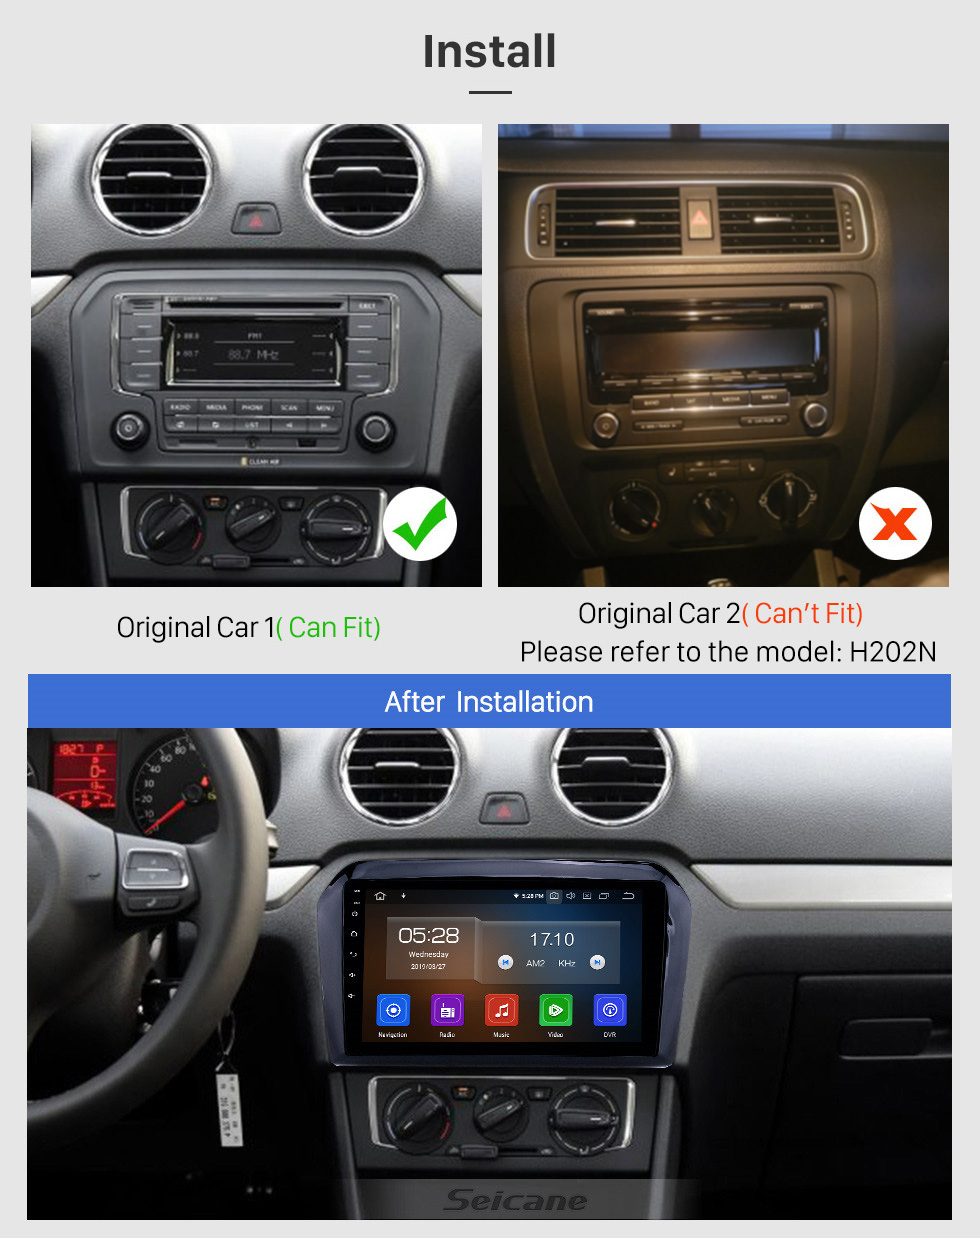 Seicane 9 inch Android 10.0 GPS Navigation Radio for 2013-2017 VW Volkswagen Jetta with HD Touchscreen Carplay AUX Bluetooth support 1080P